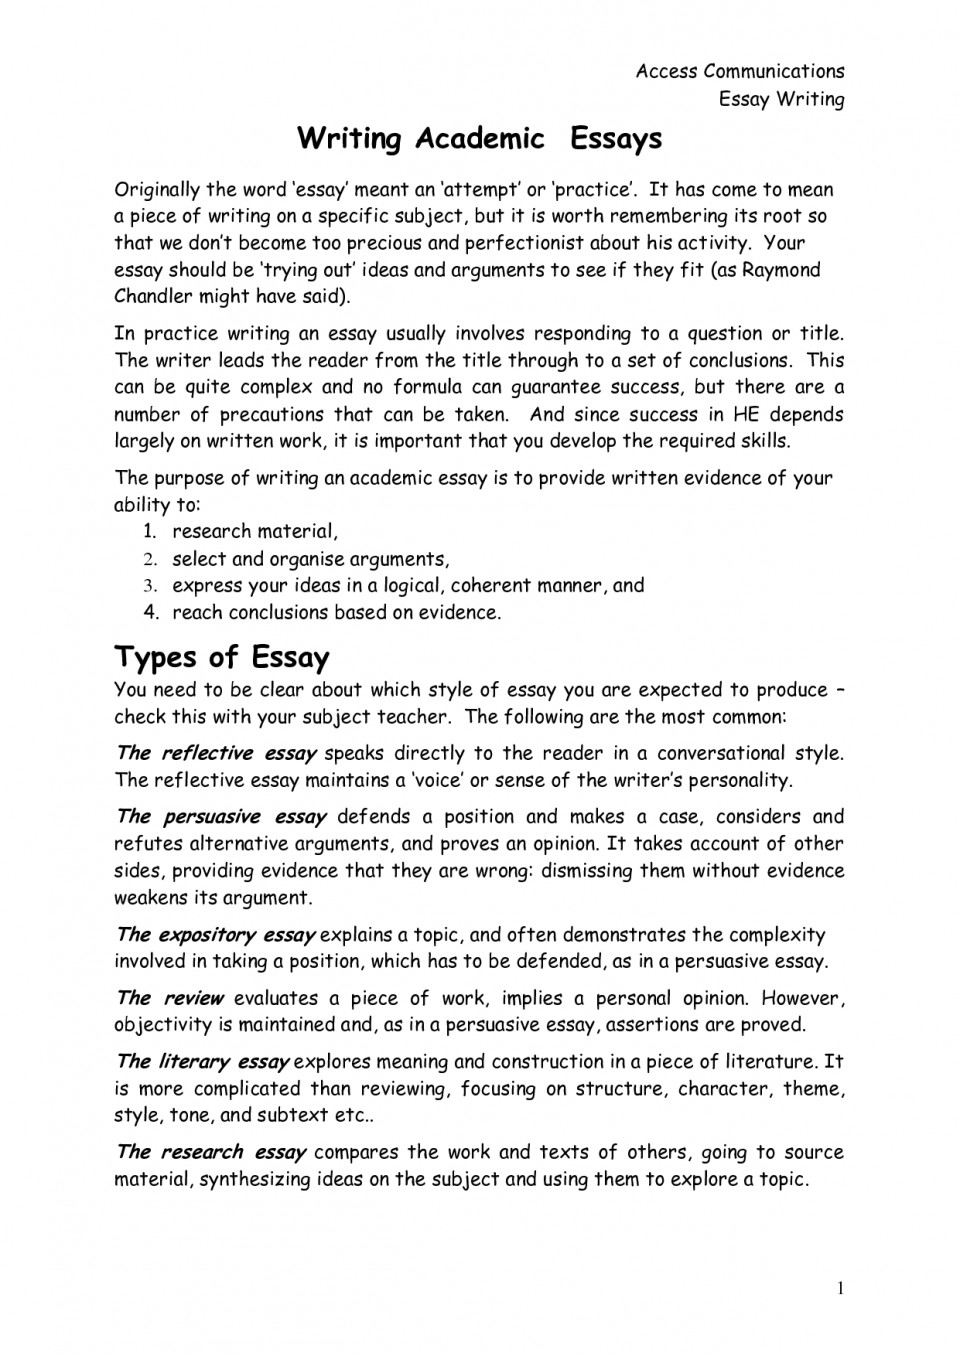 017 Essay Example Write For Me Amazing My Discount Code Online Free 960